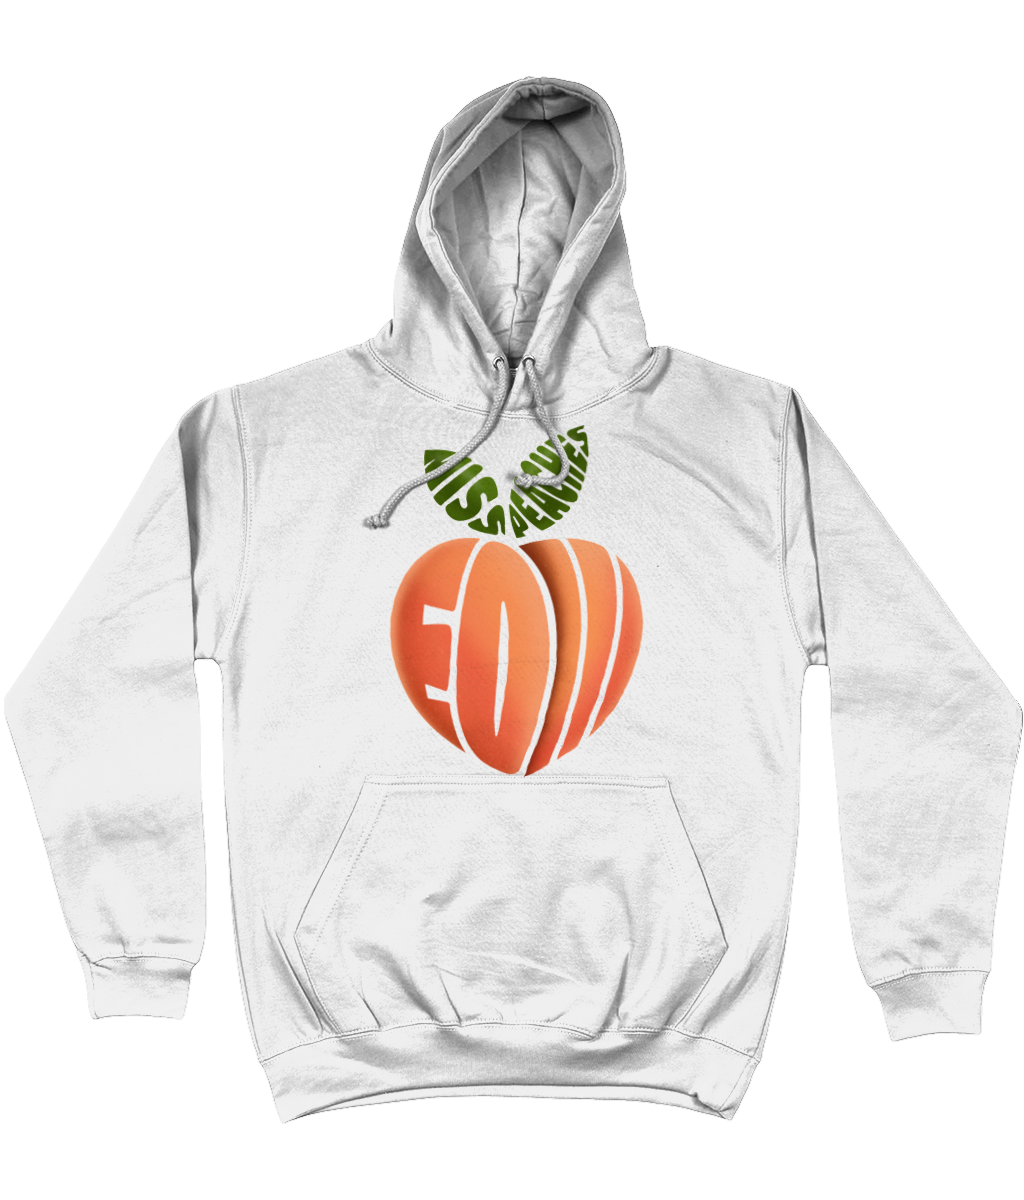 Miss Peaches - EOI Hoodie - SNATCHED